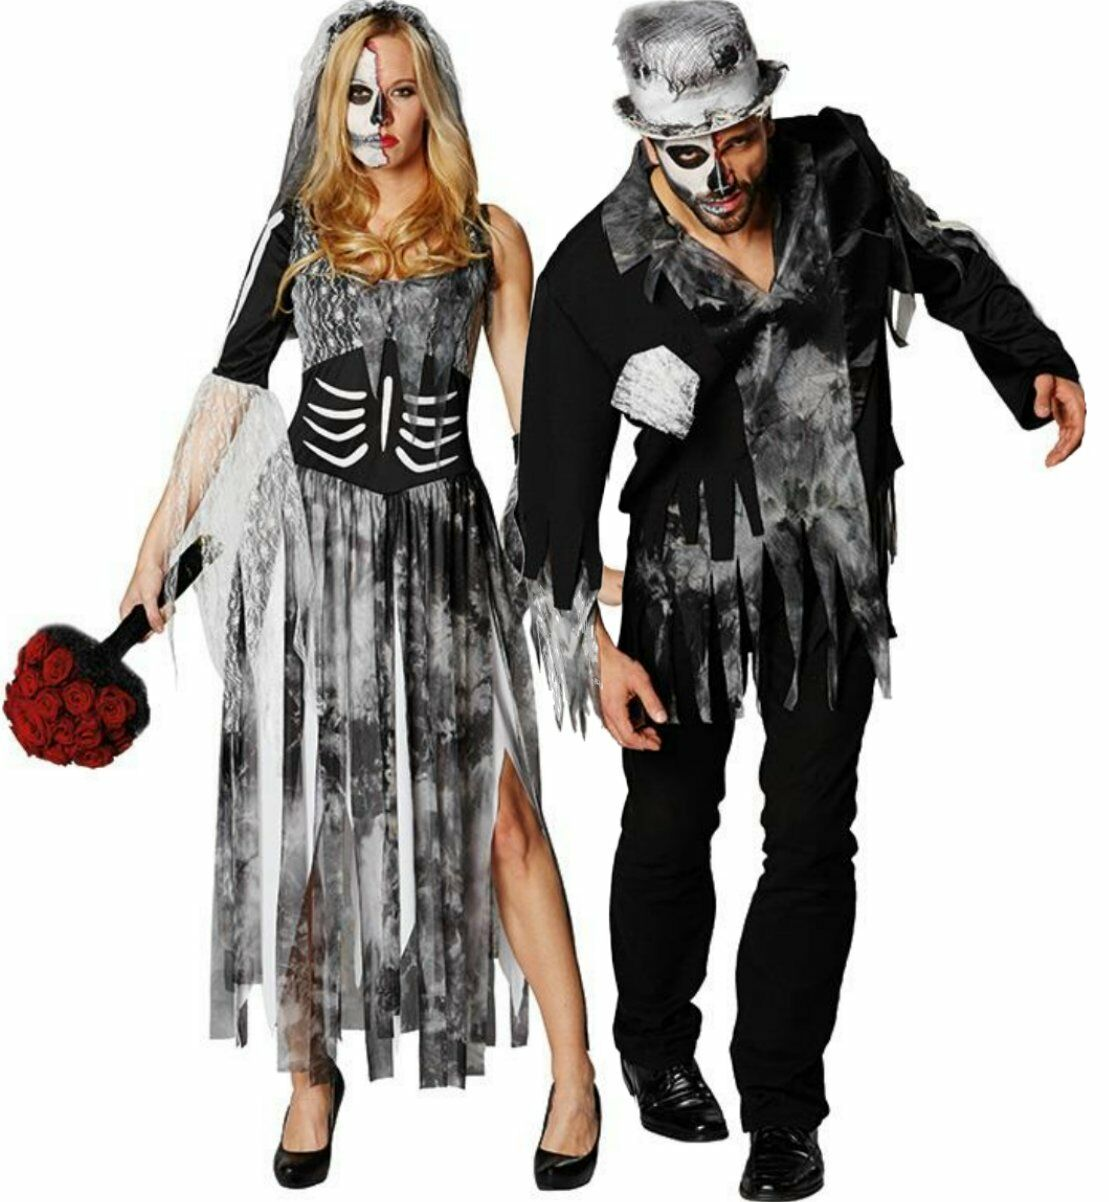 rub fasching karneval halloween kost m zombie braut br utigam horror untote ebay. Black Bedroom Furniture Sets. Home Design Ideas